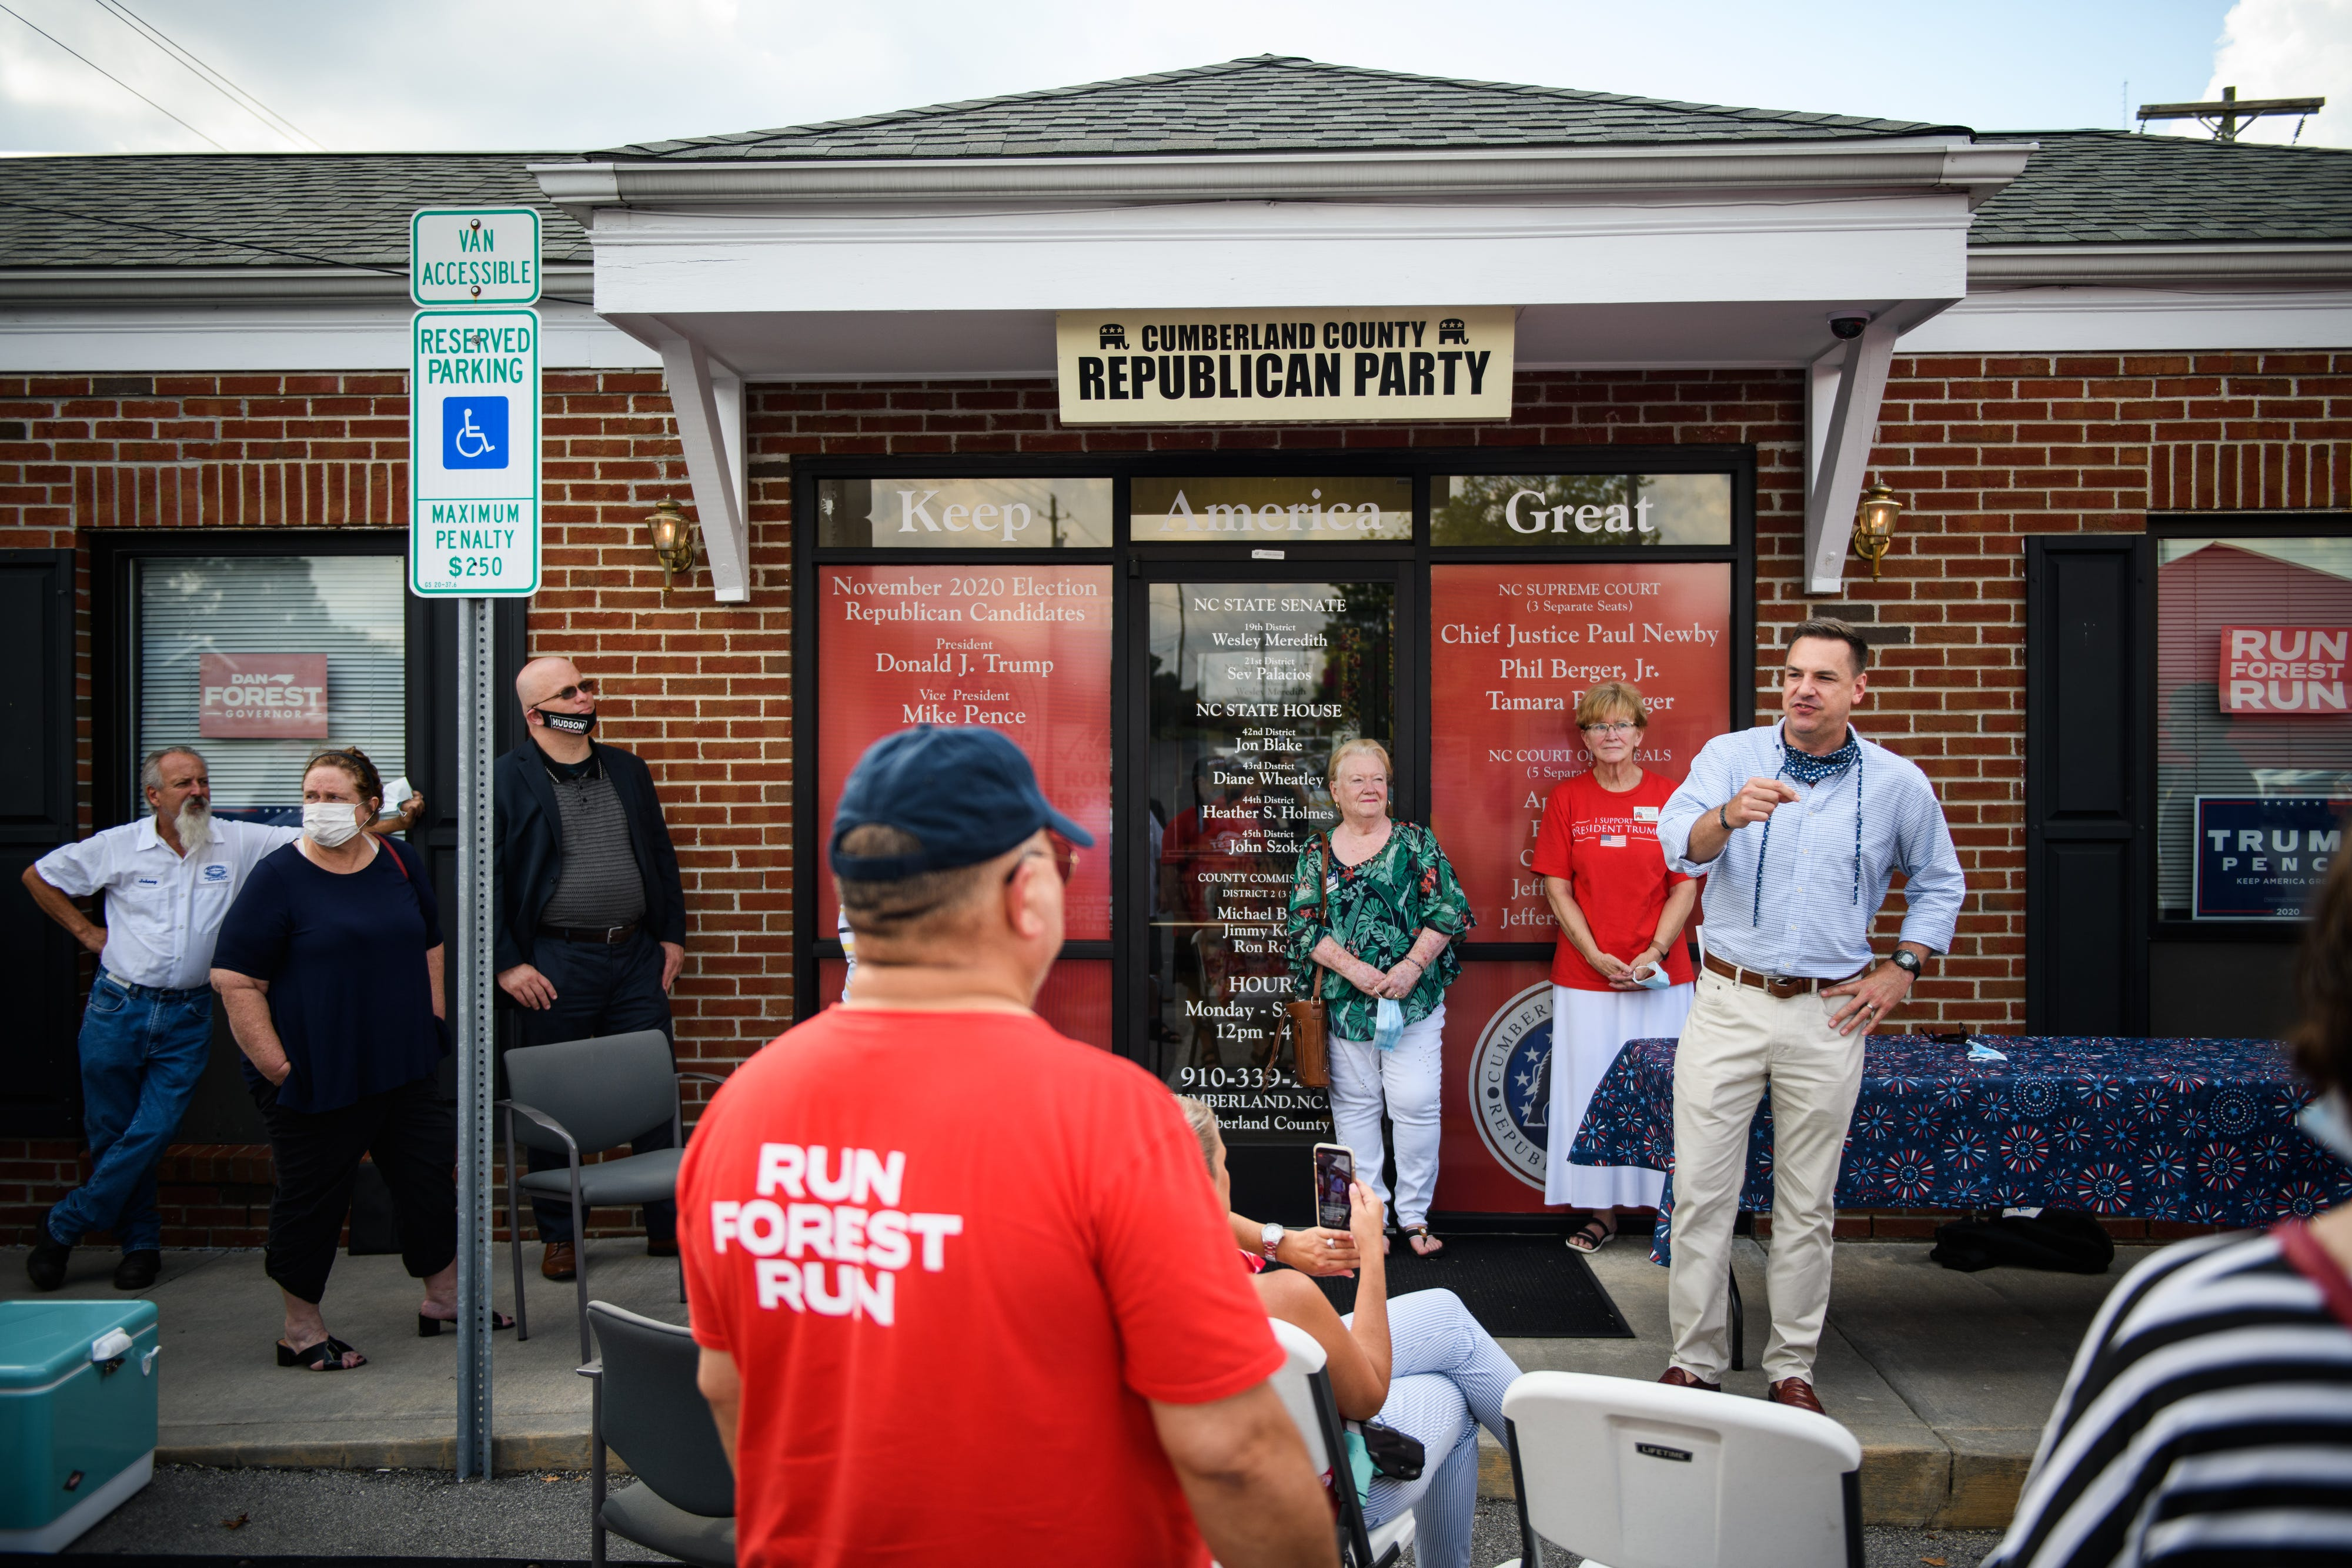 U.S. Rep. Richard Hudson speaks at the Cumberland County Republican Party headquarters on Wednesday, Aug. 19, 2020. He told supporters that victory in Cumberland County and the 8th District is critical for President Donald Trump to win North Carolina and a secon term.